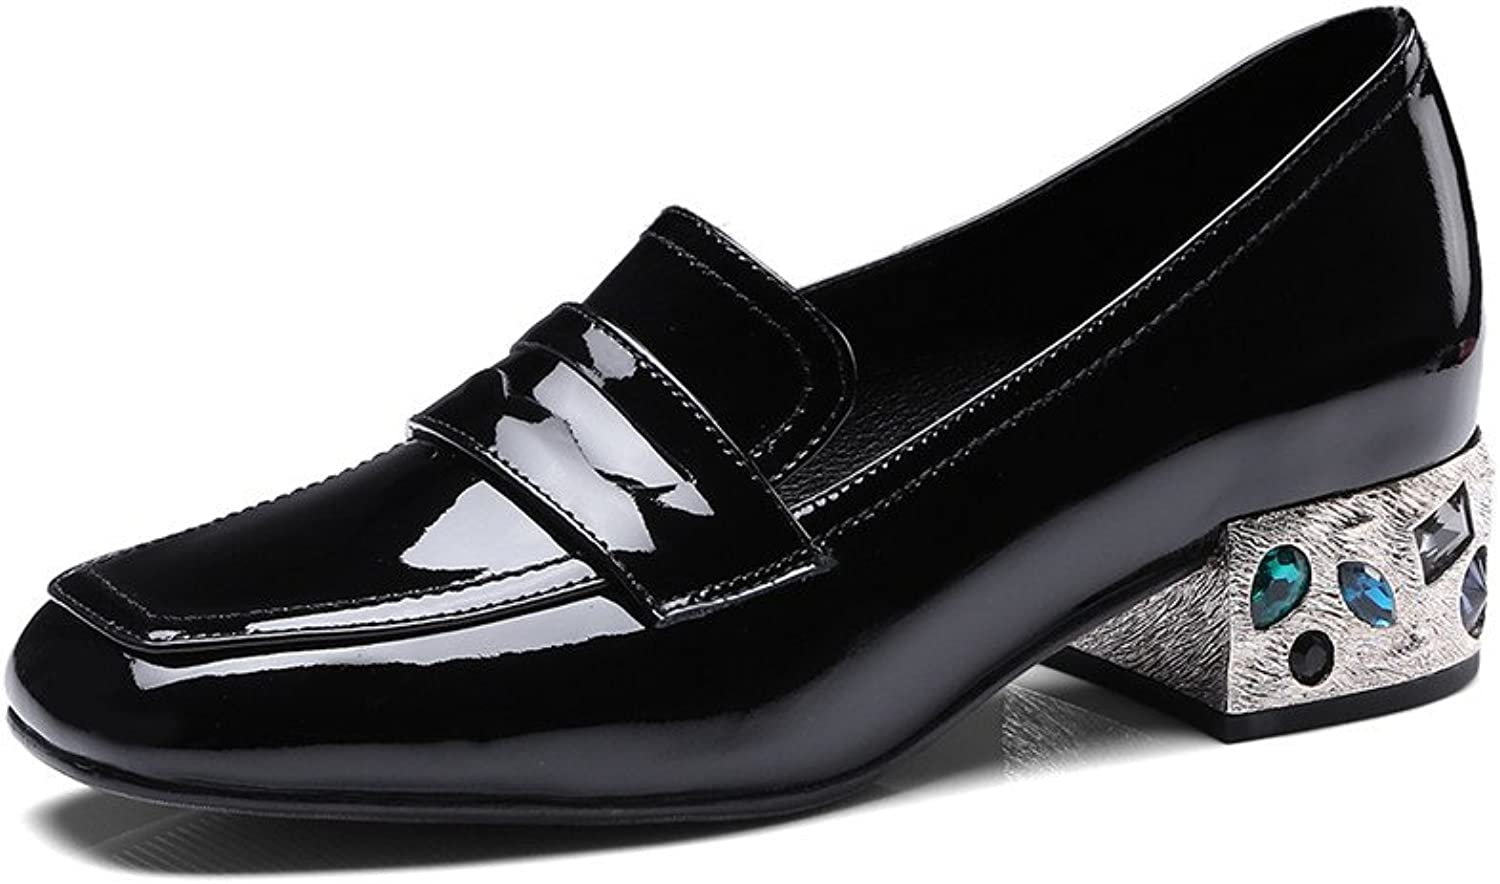 Dulce Diva Patent Leather Rhinestone Chunky Heel Square Toe Slip On Loafers shoes Women